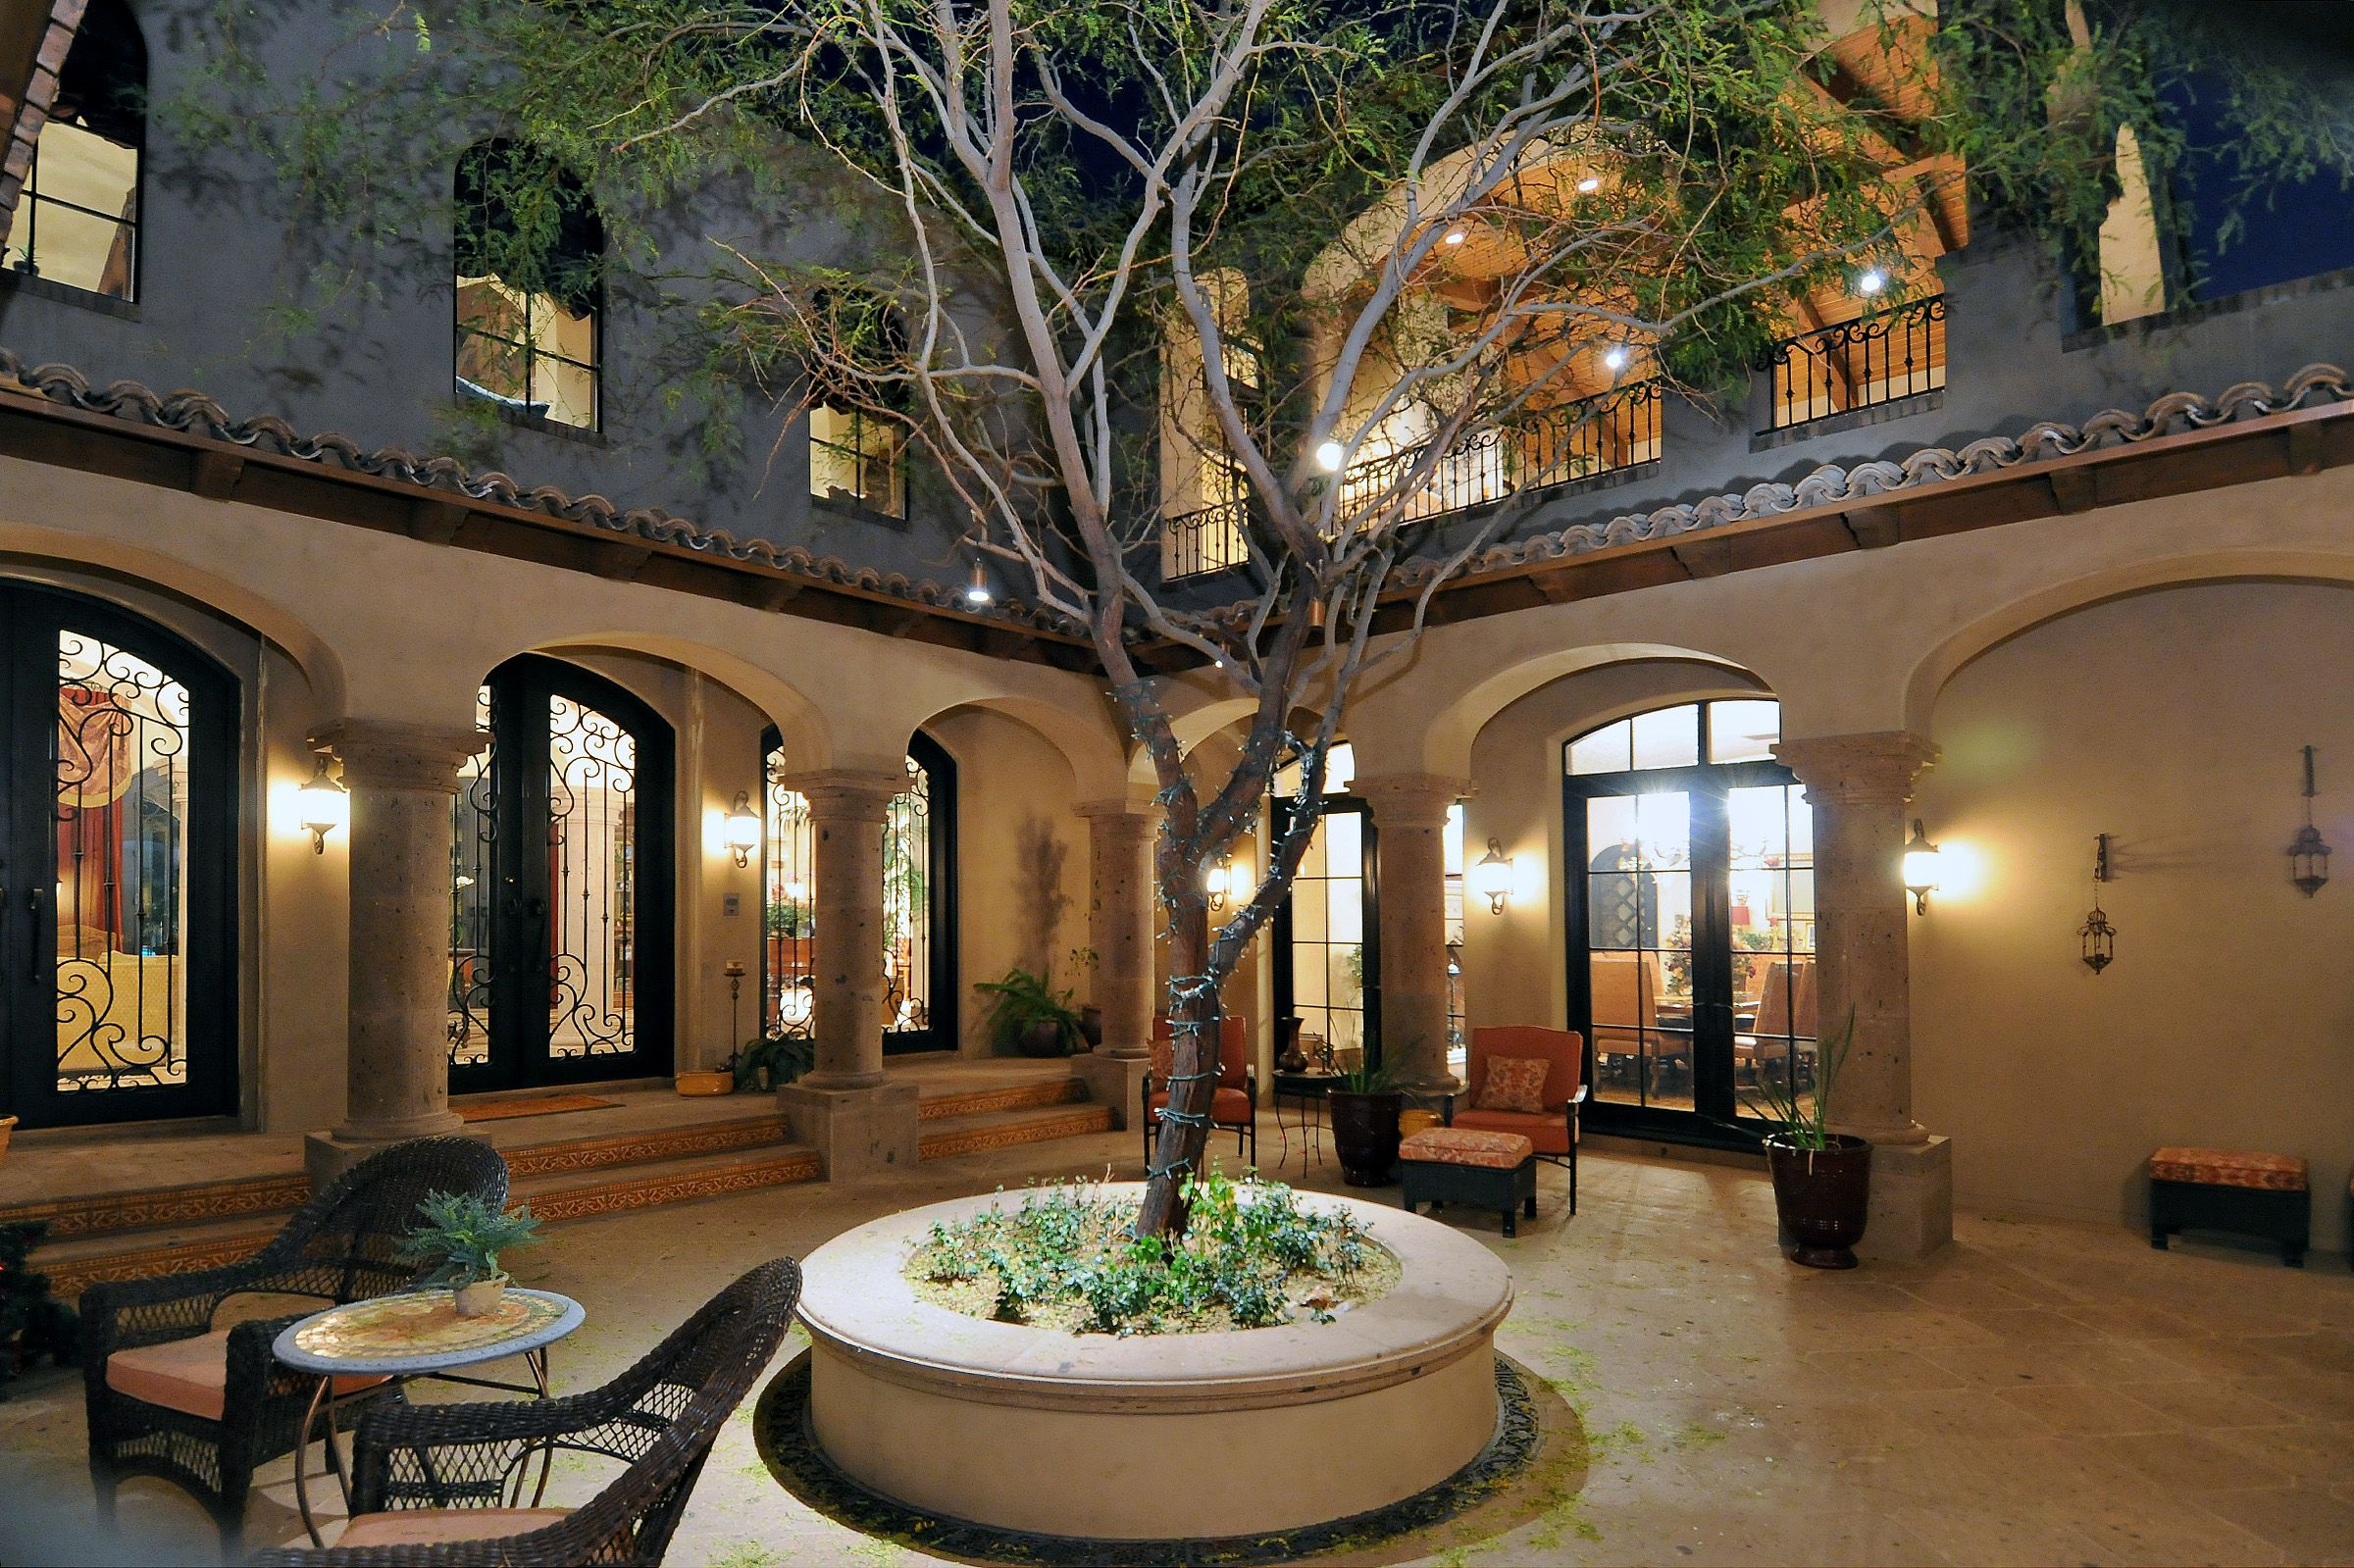 2courtyard Jpg 2 400 1 599 Pixels Courtyard House Plans Spanish Style Homes Spanish House